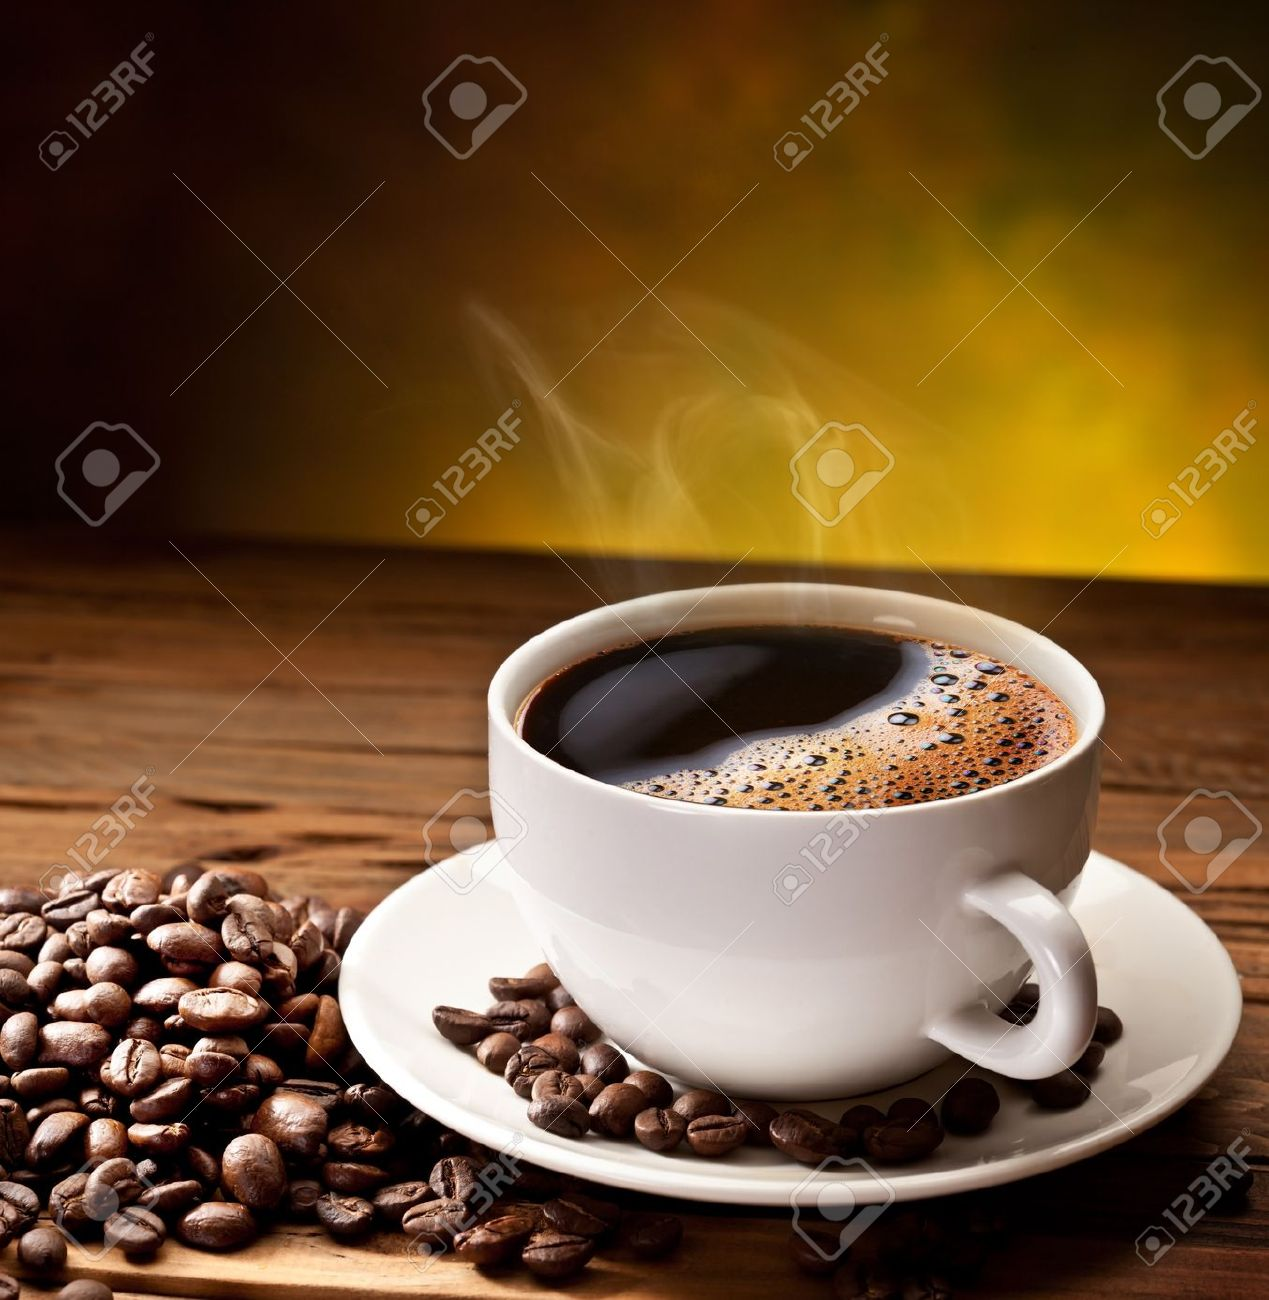 Coffee cup and saucer on a wooden table. Dark background. Stock Photo - 15195673